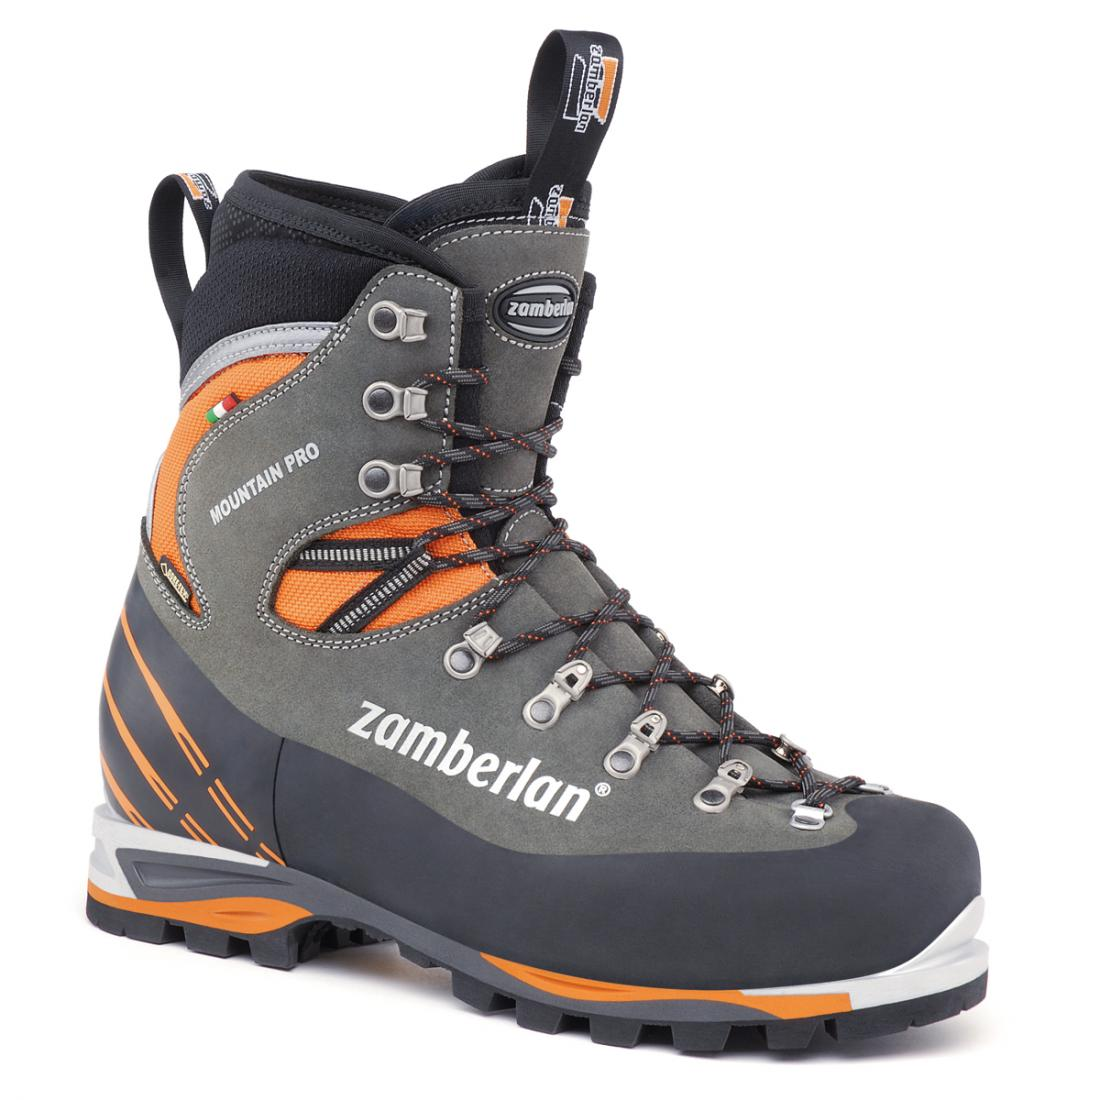 Zamberlan Ботинки 2090 MOUNTAIN PRO EVO GTX RR (45, Graphite/Orange, , ,) ботинки meindl meindl vakuum gtx